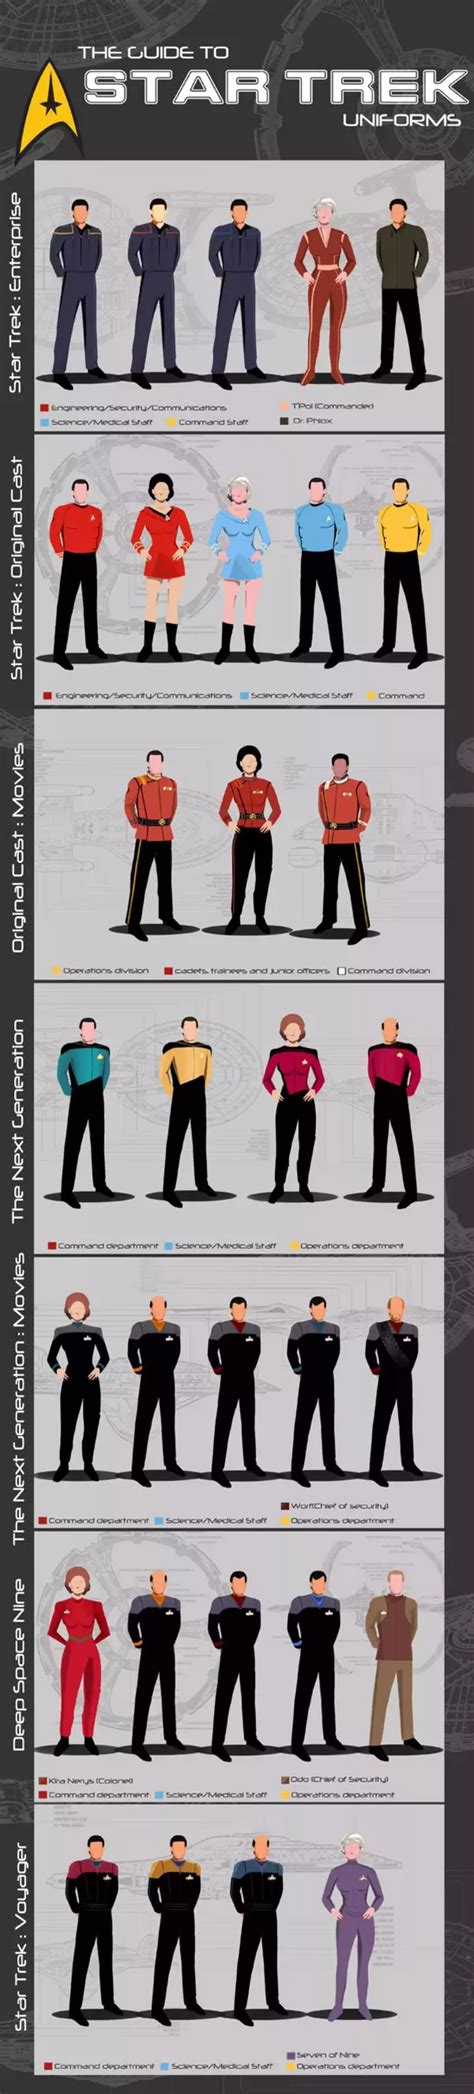 trek colors what do the trek colors symbolize quora